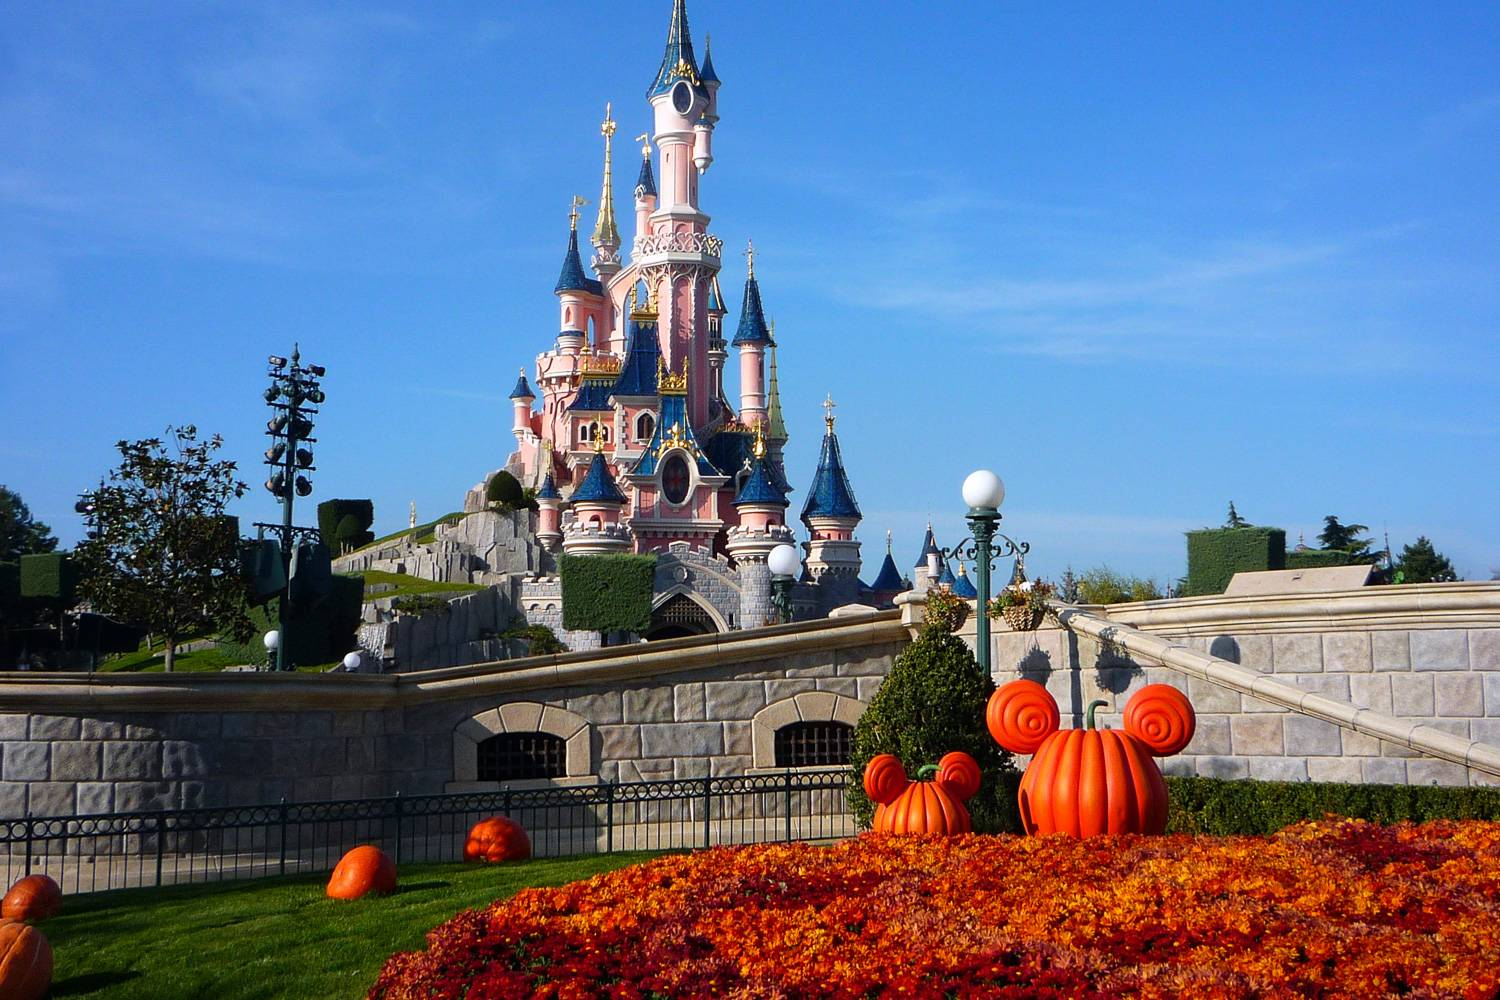 An image of Disneyland in Paris during the fall Halloween celebration.